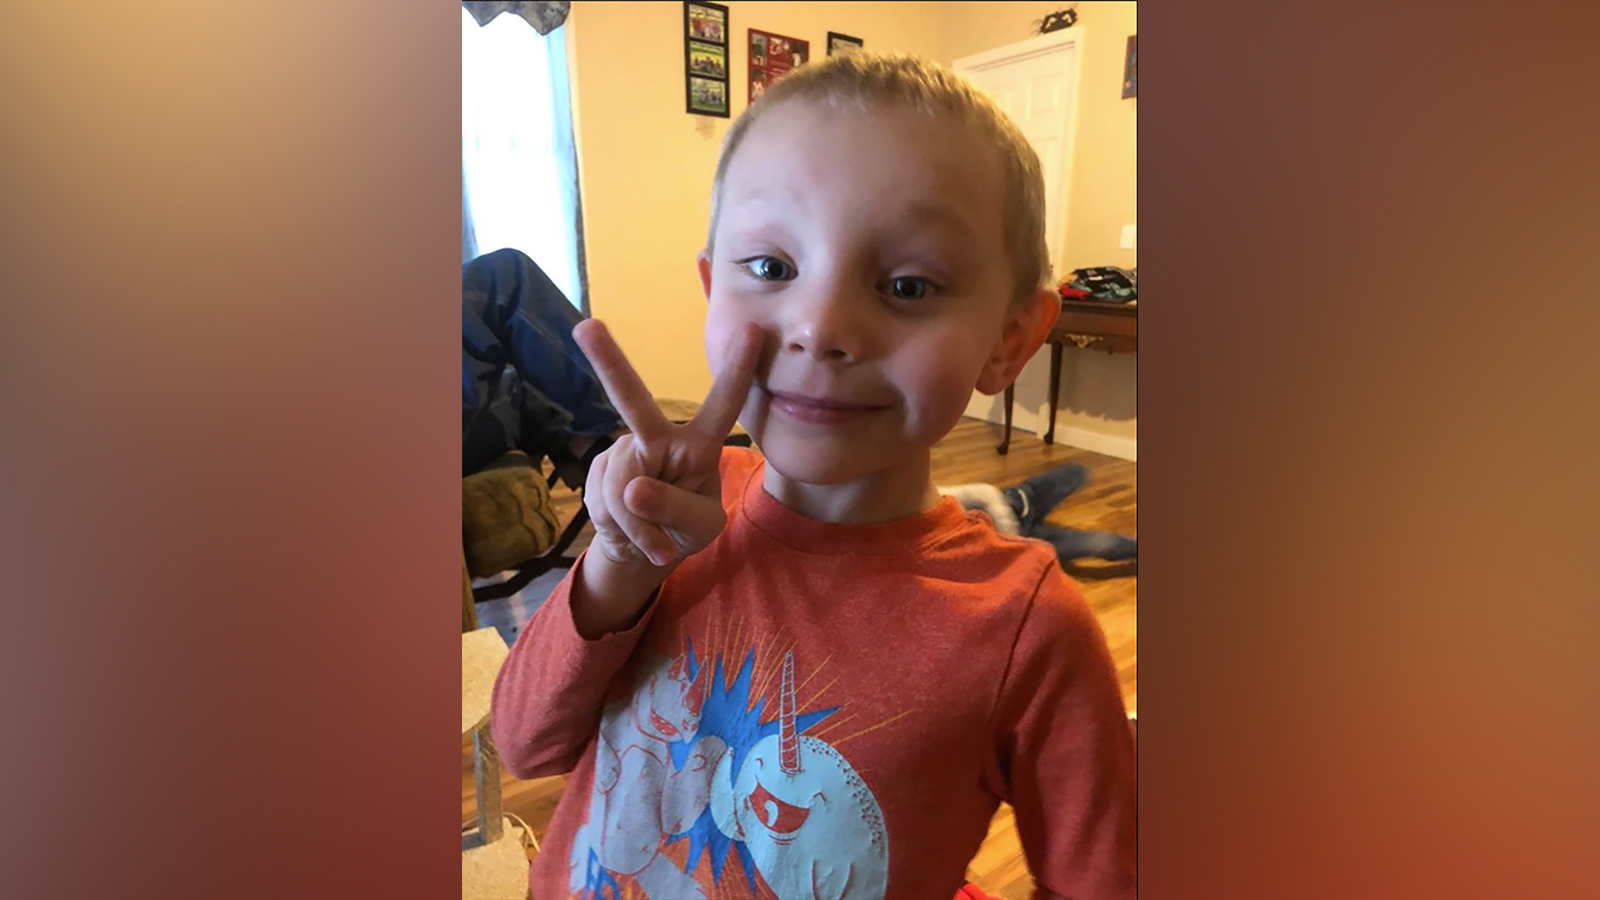 Missing 5-year-old autistic boy found dead in pond by his grandmother's house